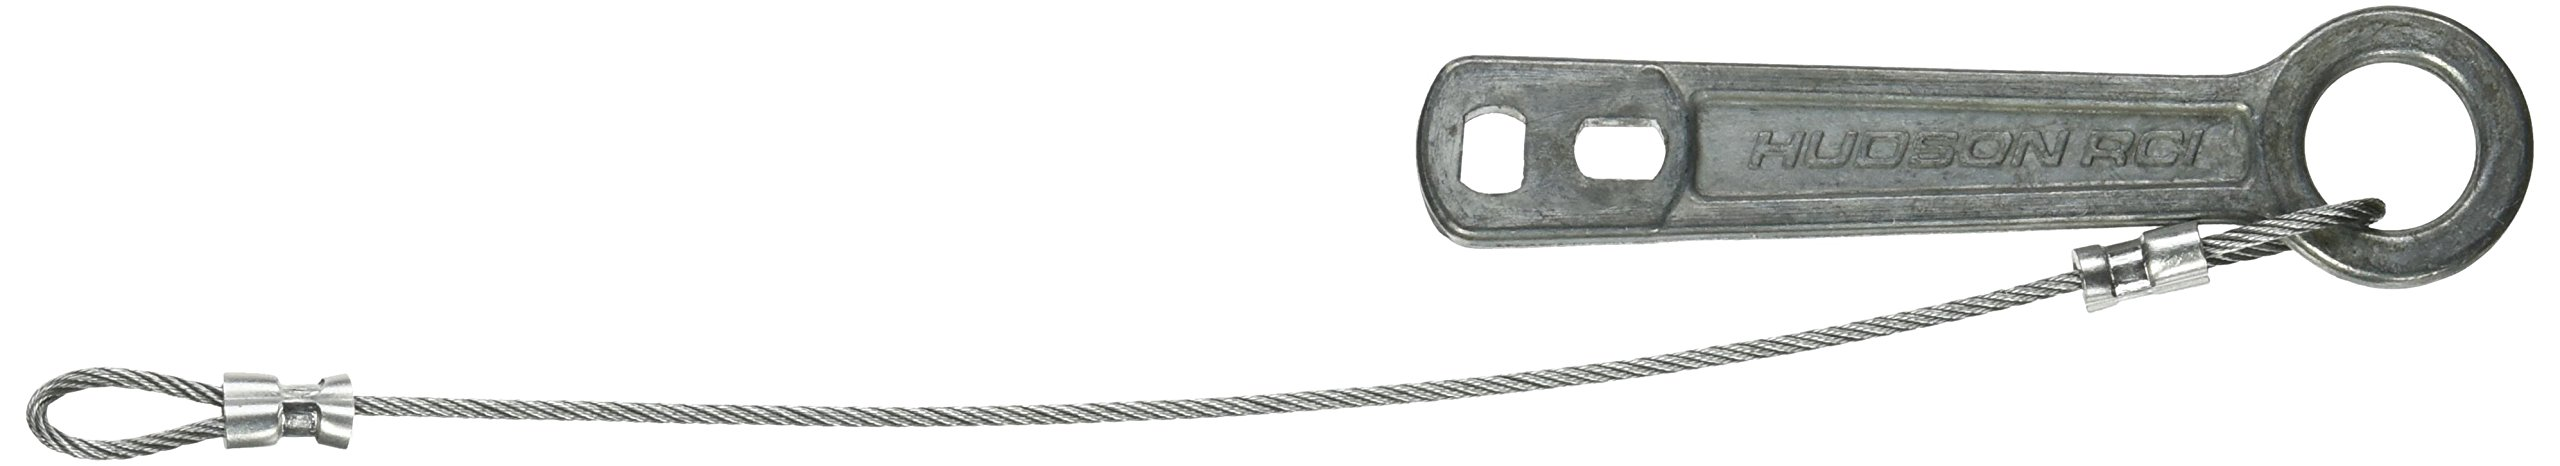 Dixie Ems 5080 Heavy Duty Metal Oxygen Cylinder Wrench, Key with Chain